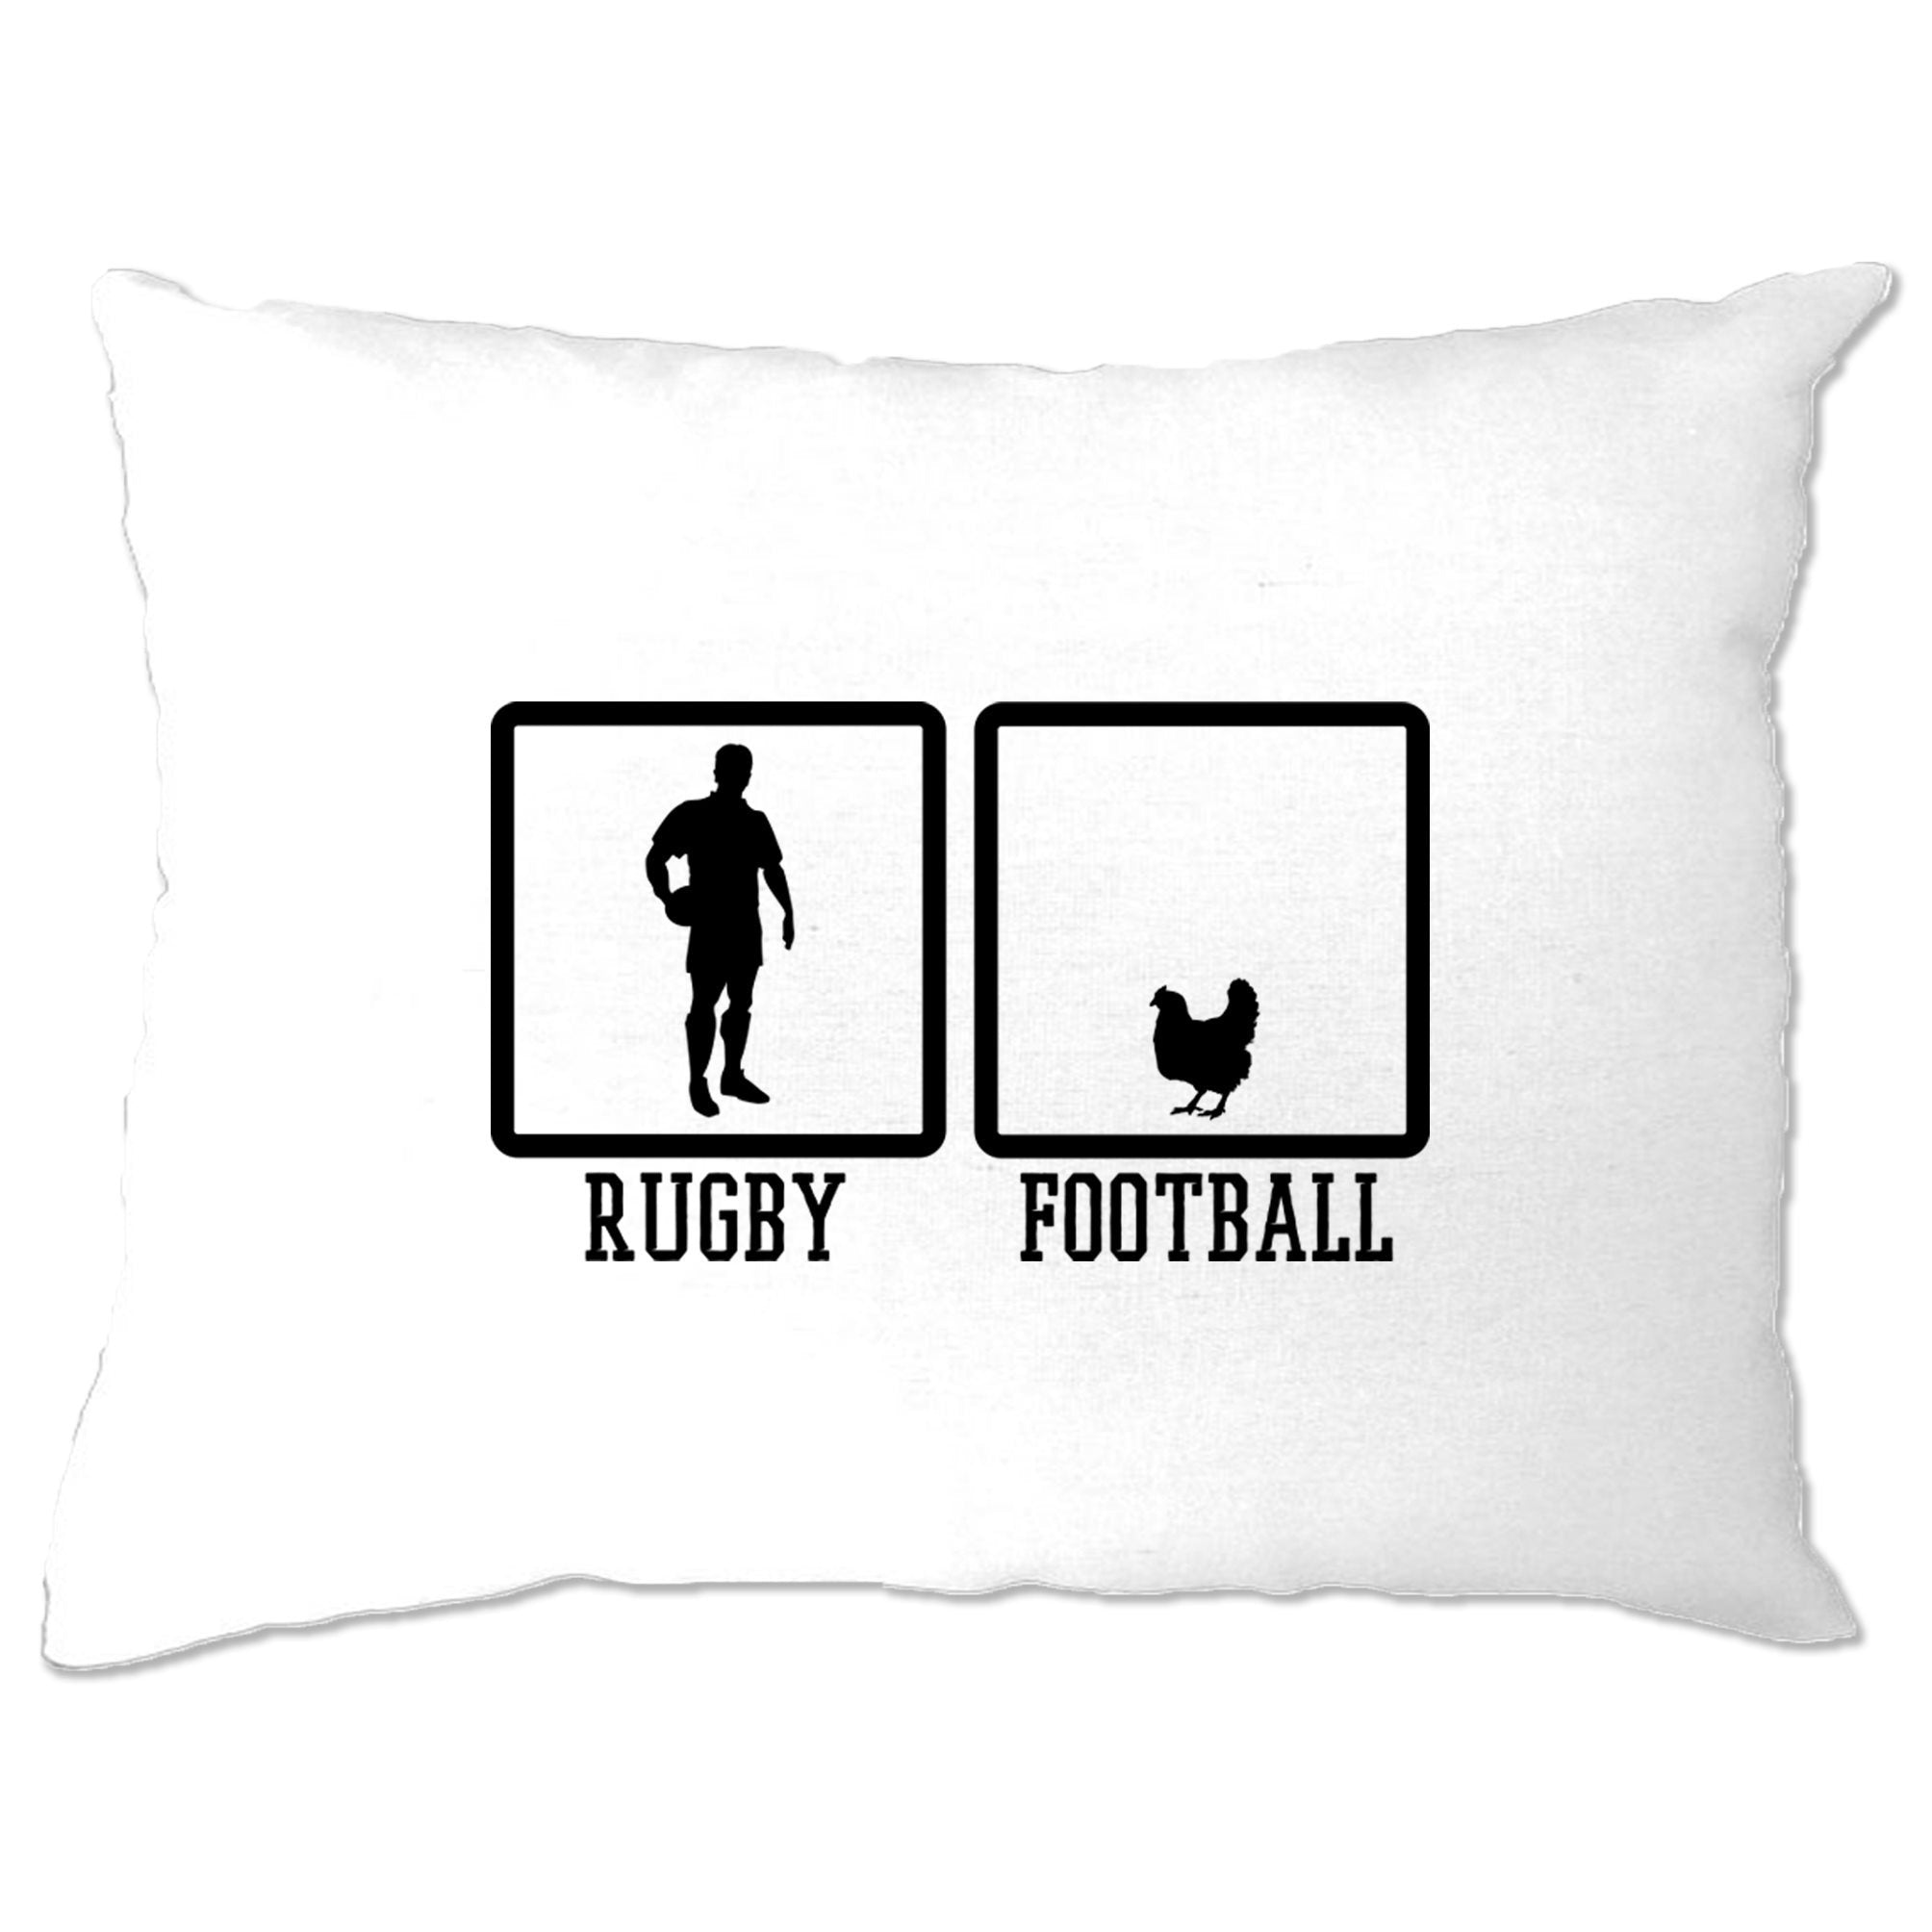 Joke Sports Pillow Case Rugby Vs Football Chicken Novelty